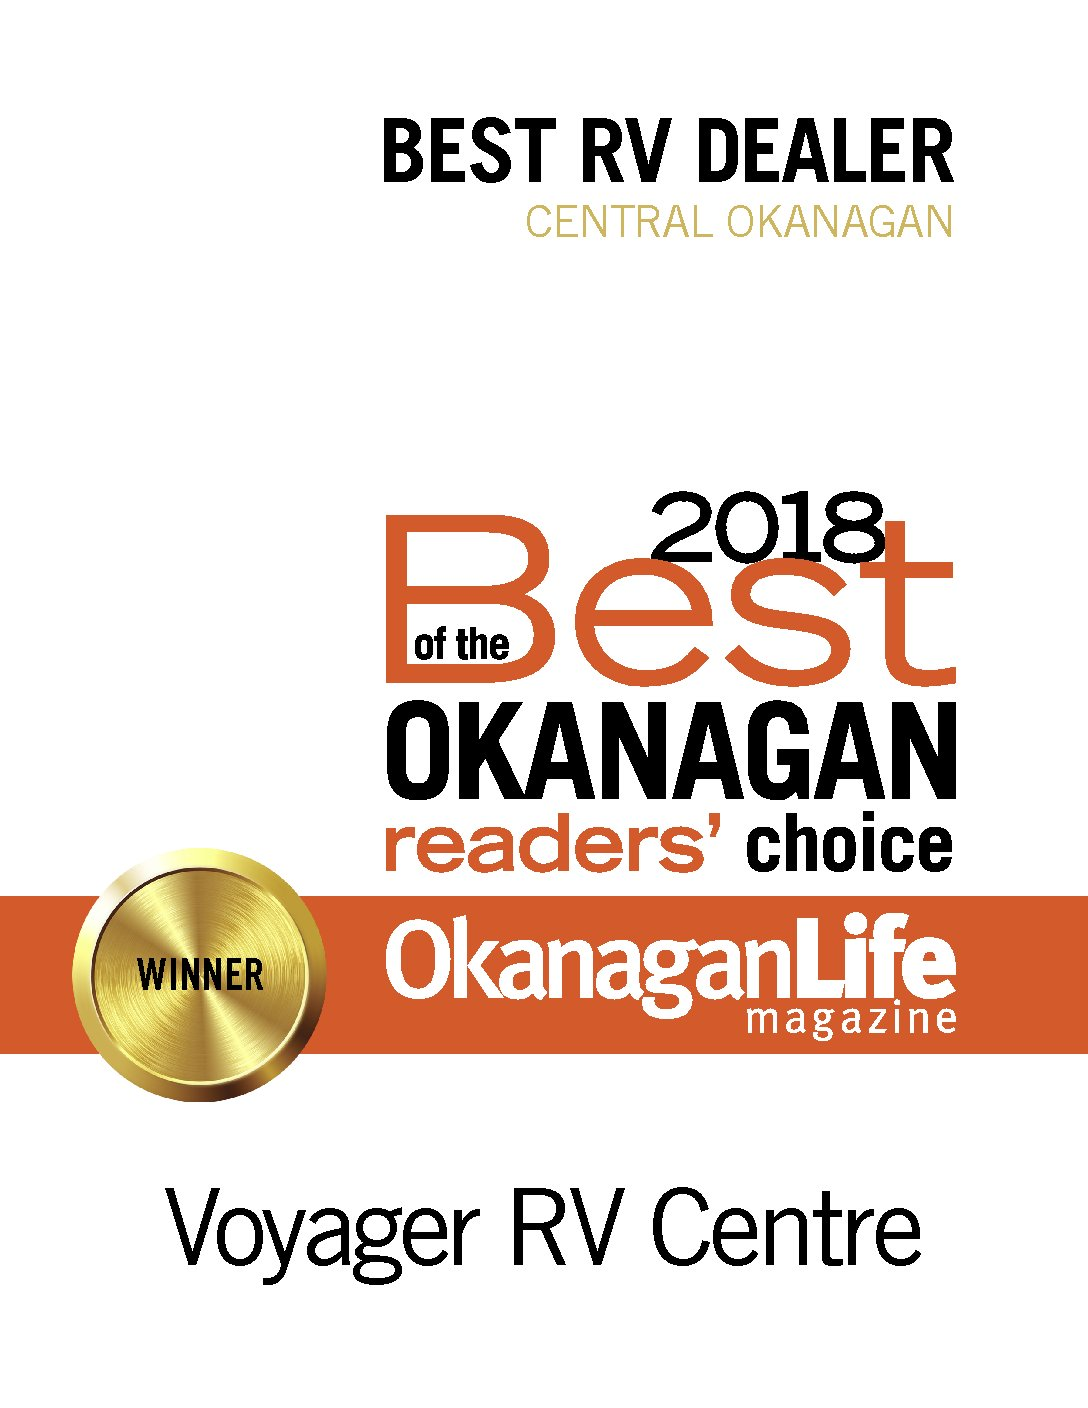 Voyager RV Centre